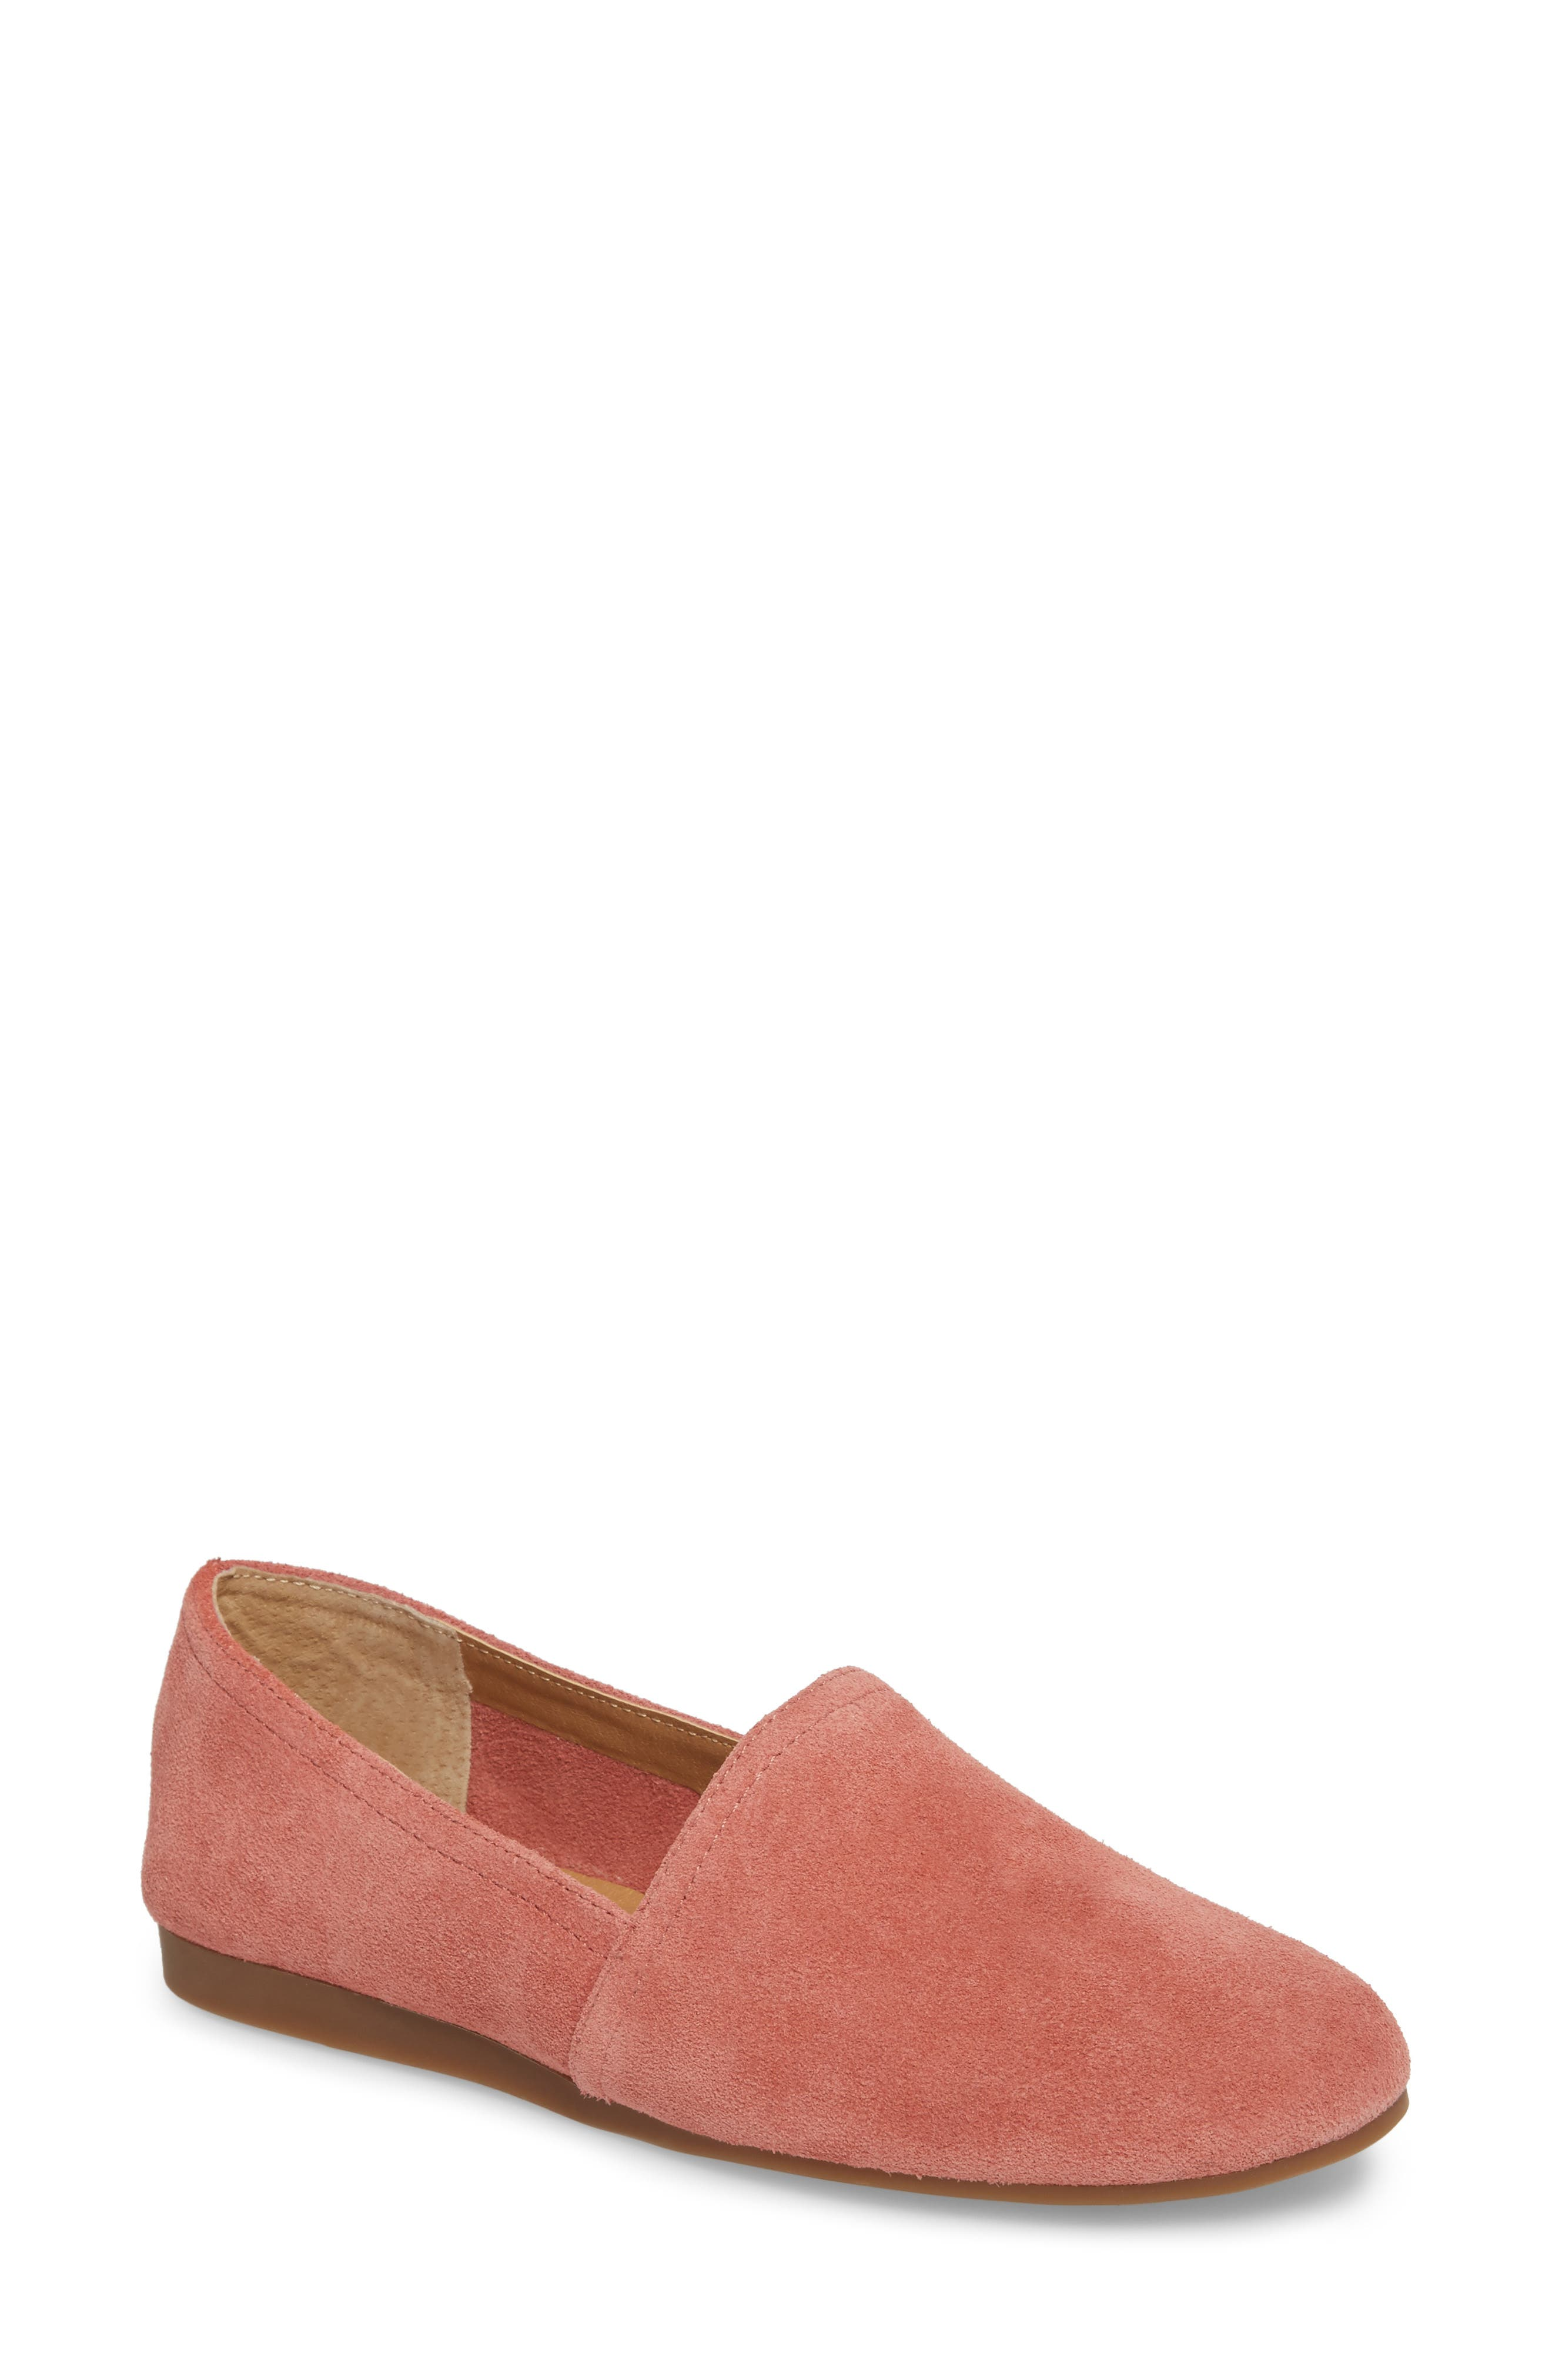 Brettany Loafer,                             Main thumbnail 1, color,                             Canyon Rose Suede